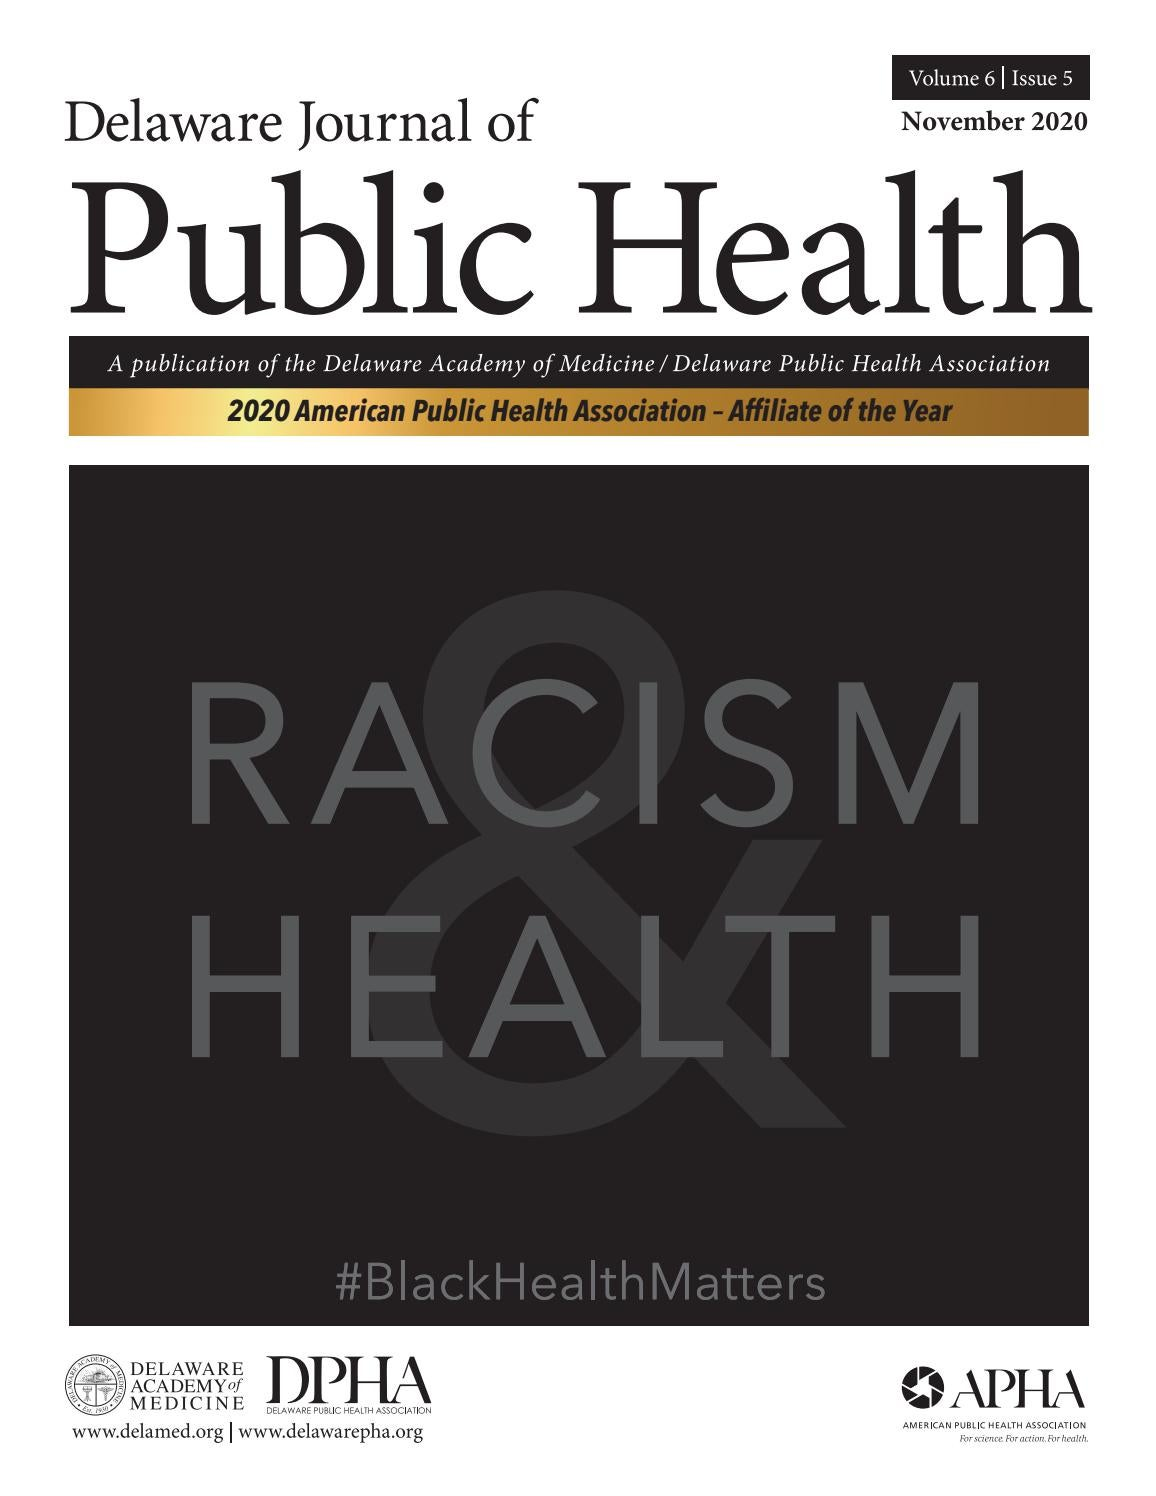 Delaware Journal Of Public Health Racism And Health By Delaware Academy Of Medicine And The Delaware Public Health Association Issuu